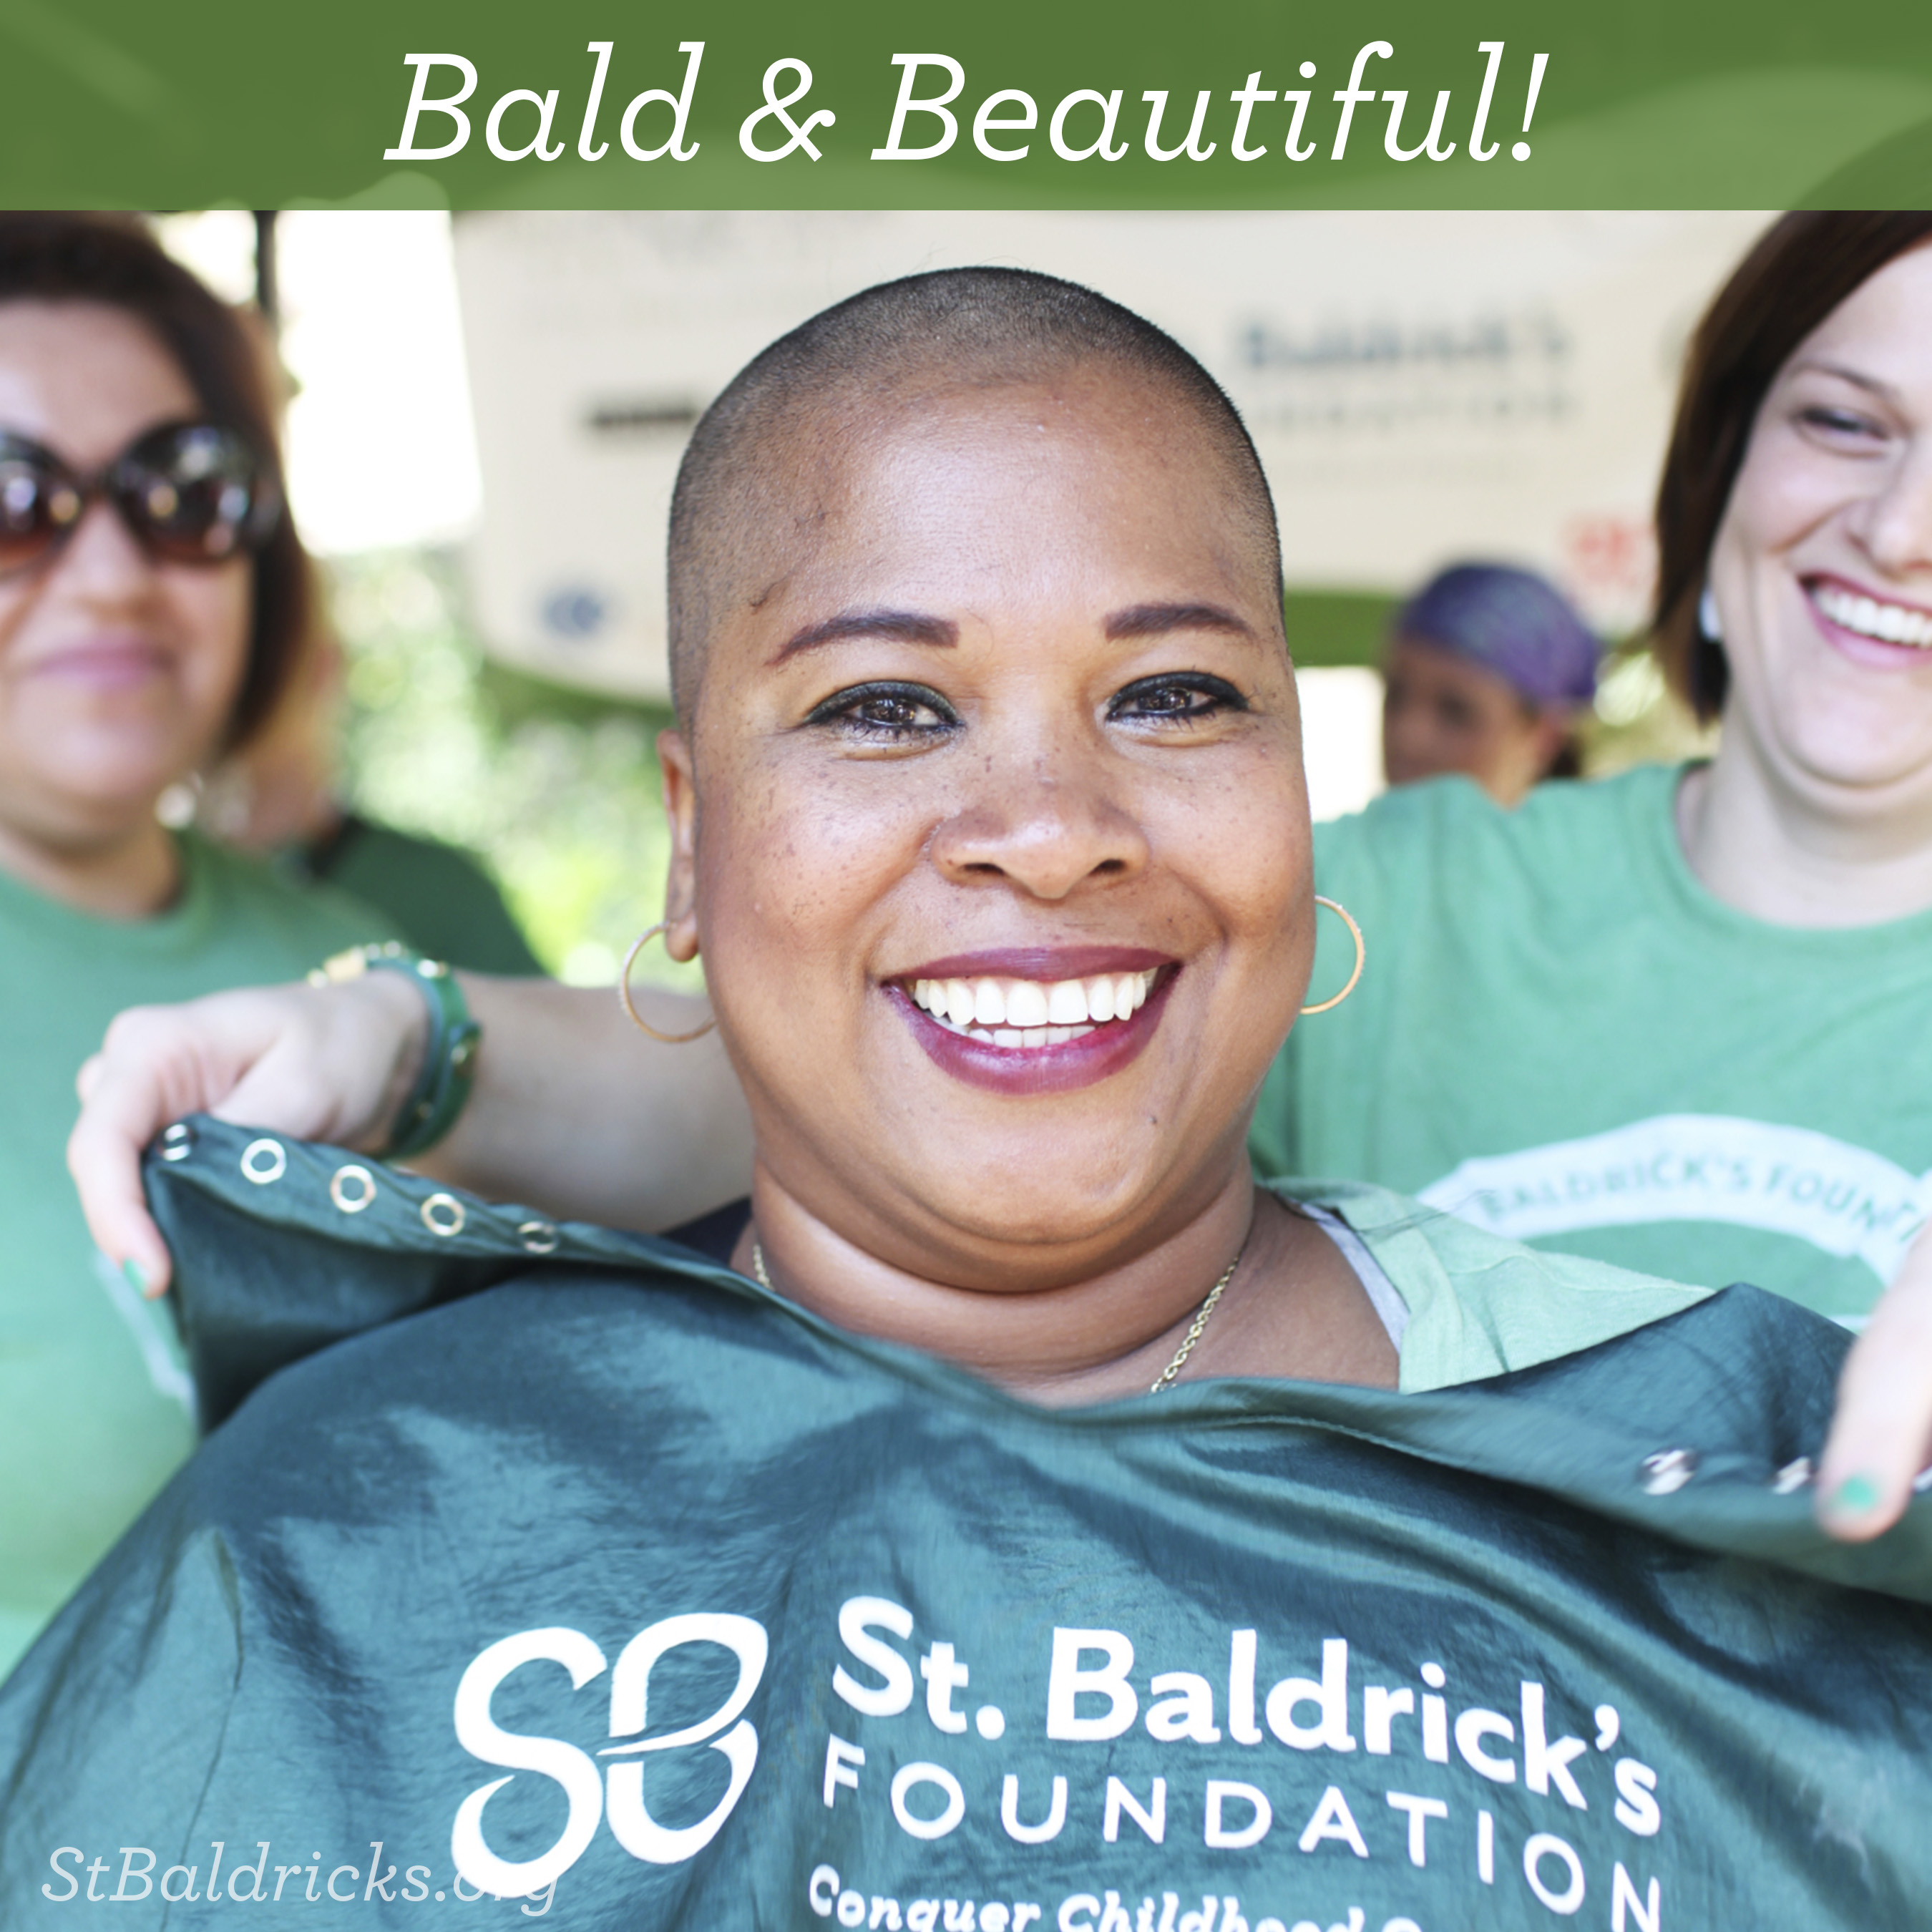 St. Baldrick's Foundation Awards Over $2 Million in Grants ...